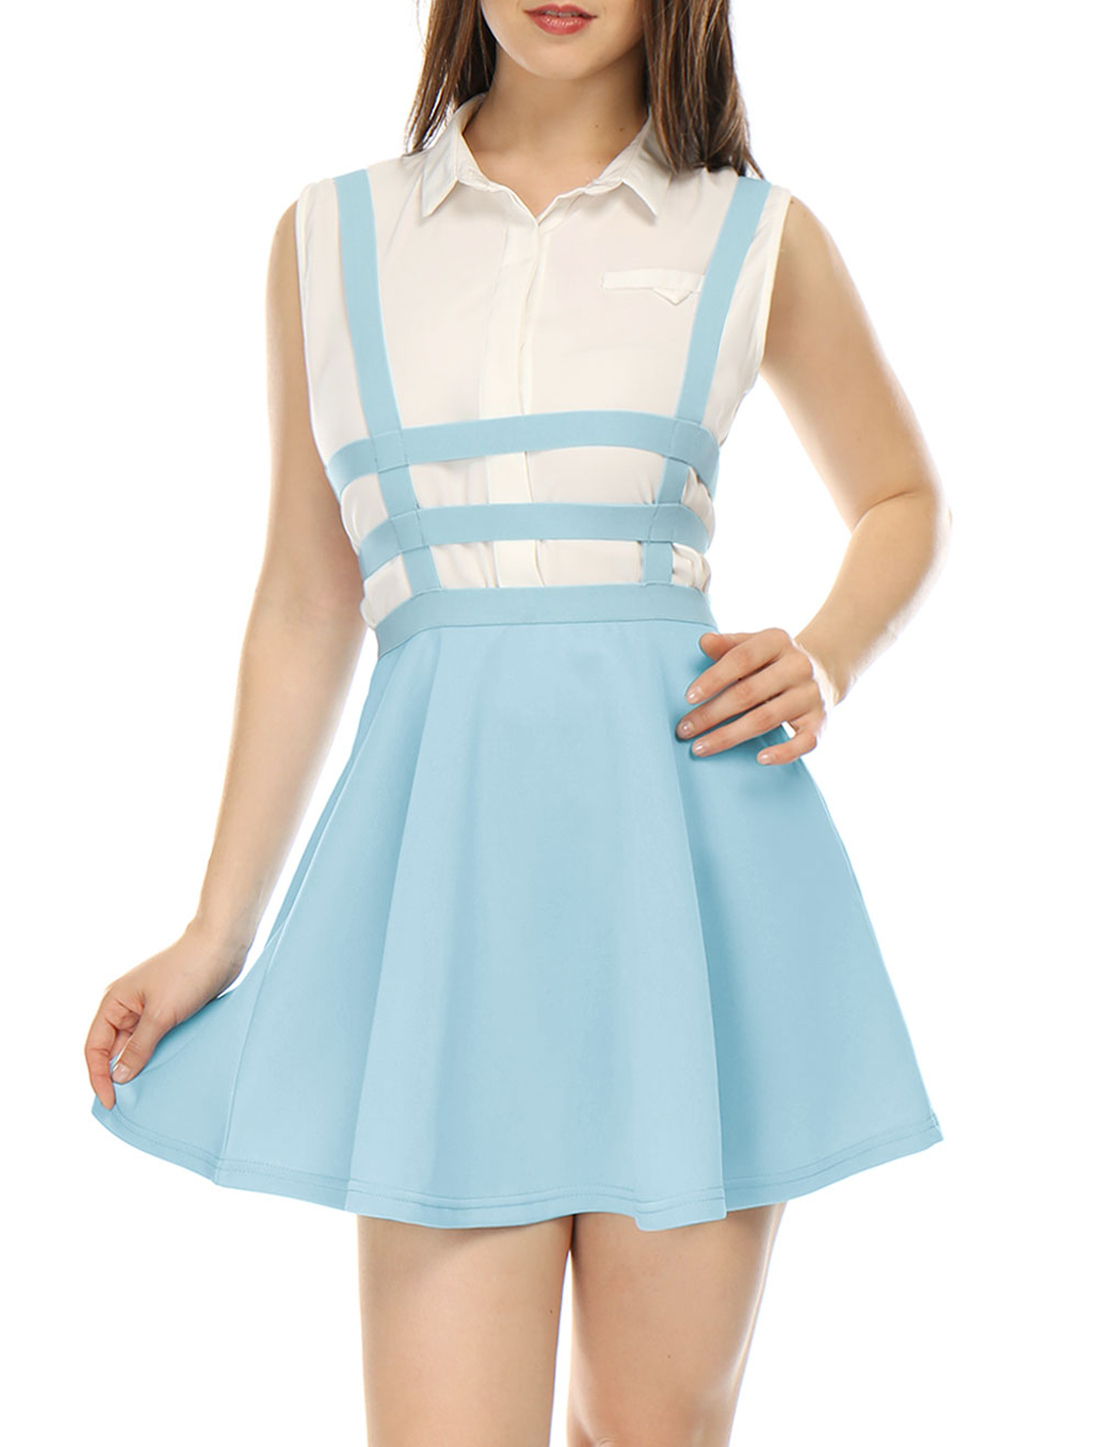 Women Elastic Waist Cut Out A Line Suspender Skirt Light Blue XL